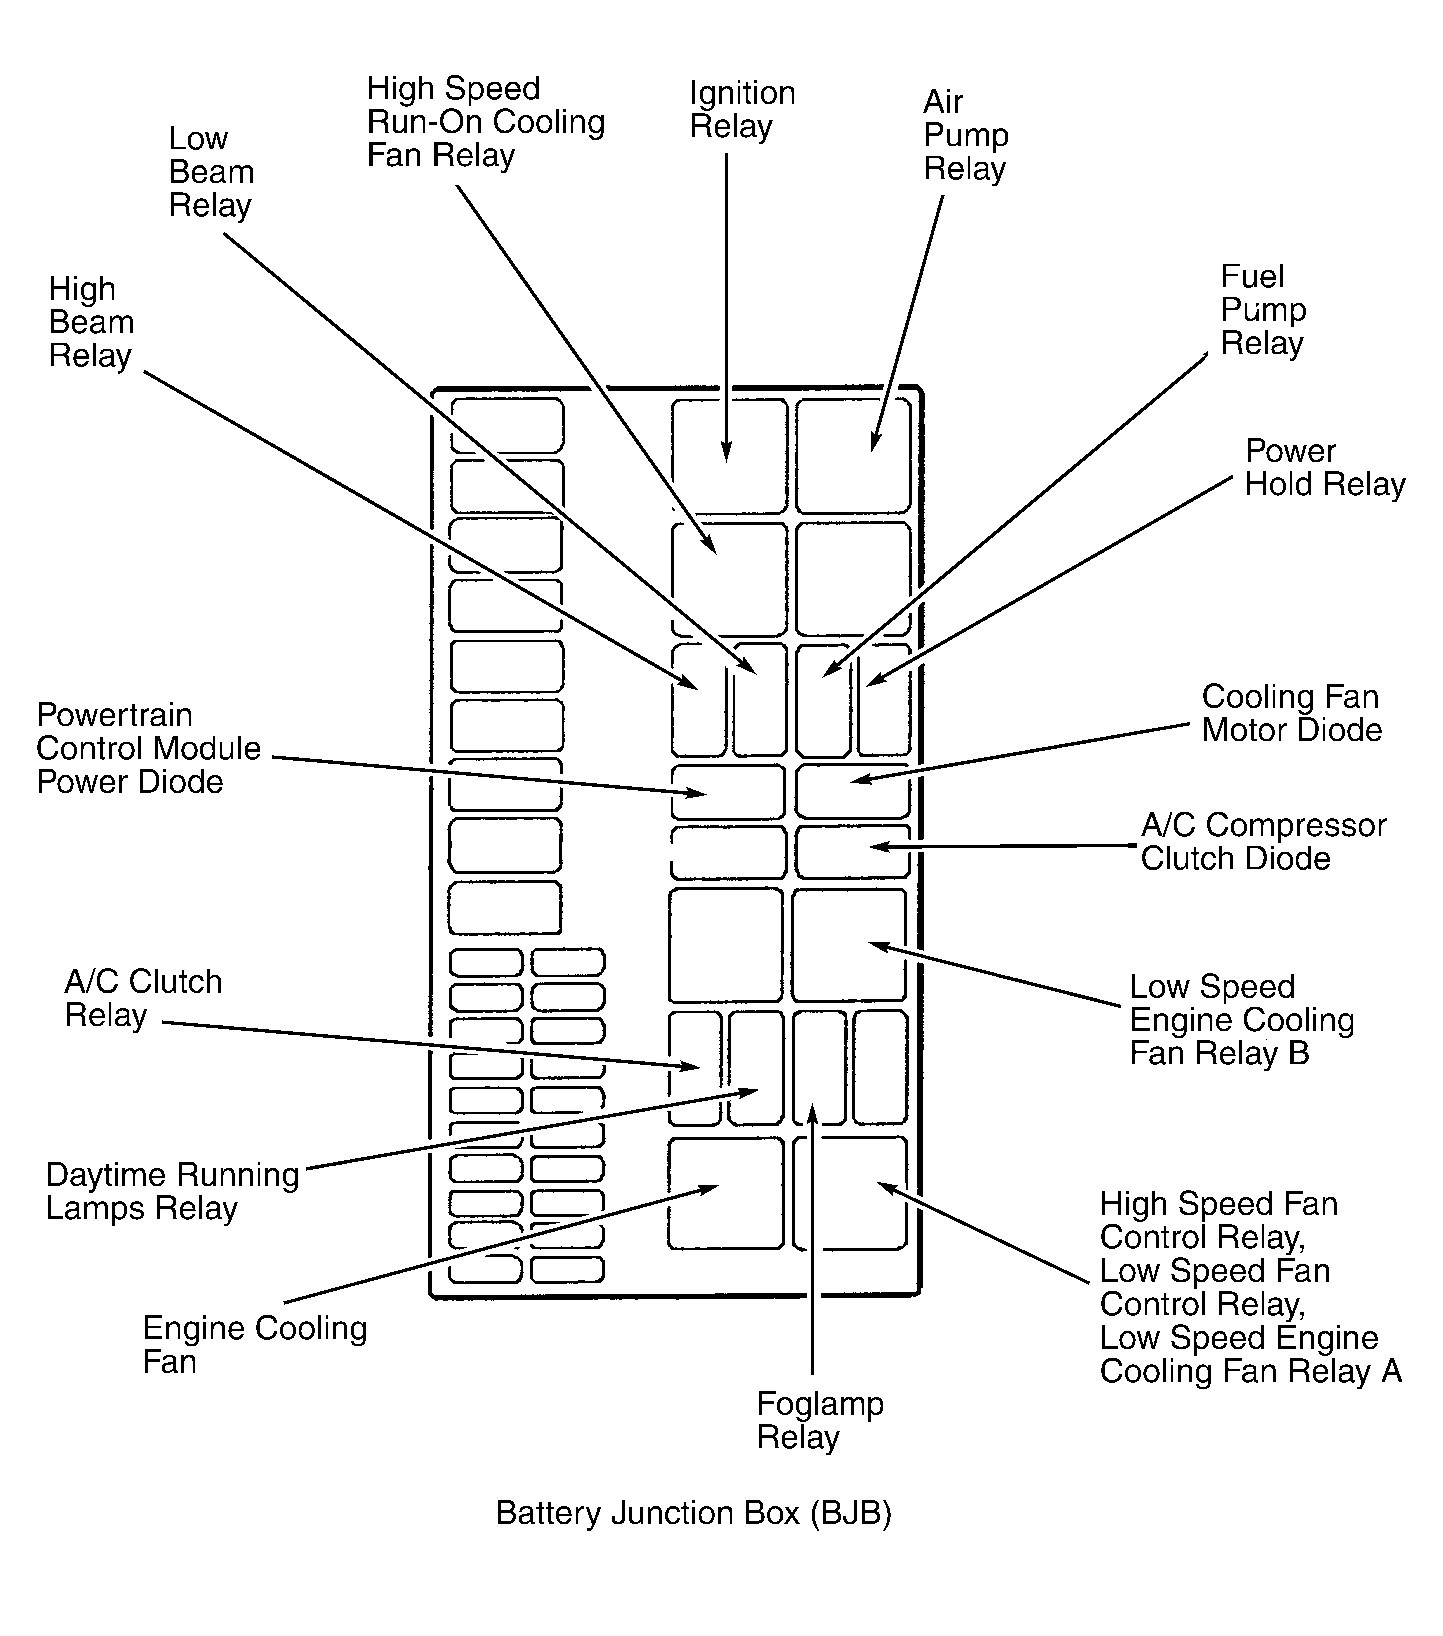 hight resolution of 2002 ford focus se engine diagram 2001 ford focus fuel pump wiring diagram zookastar of 2002